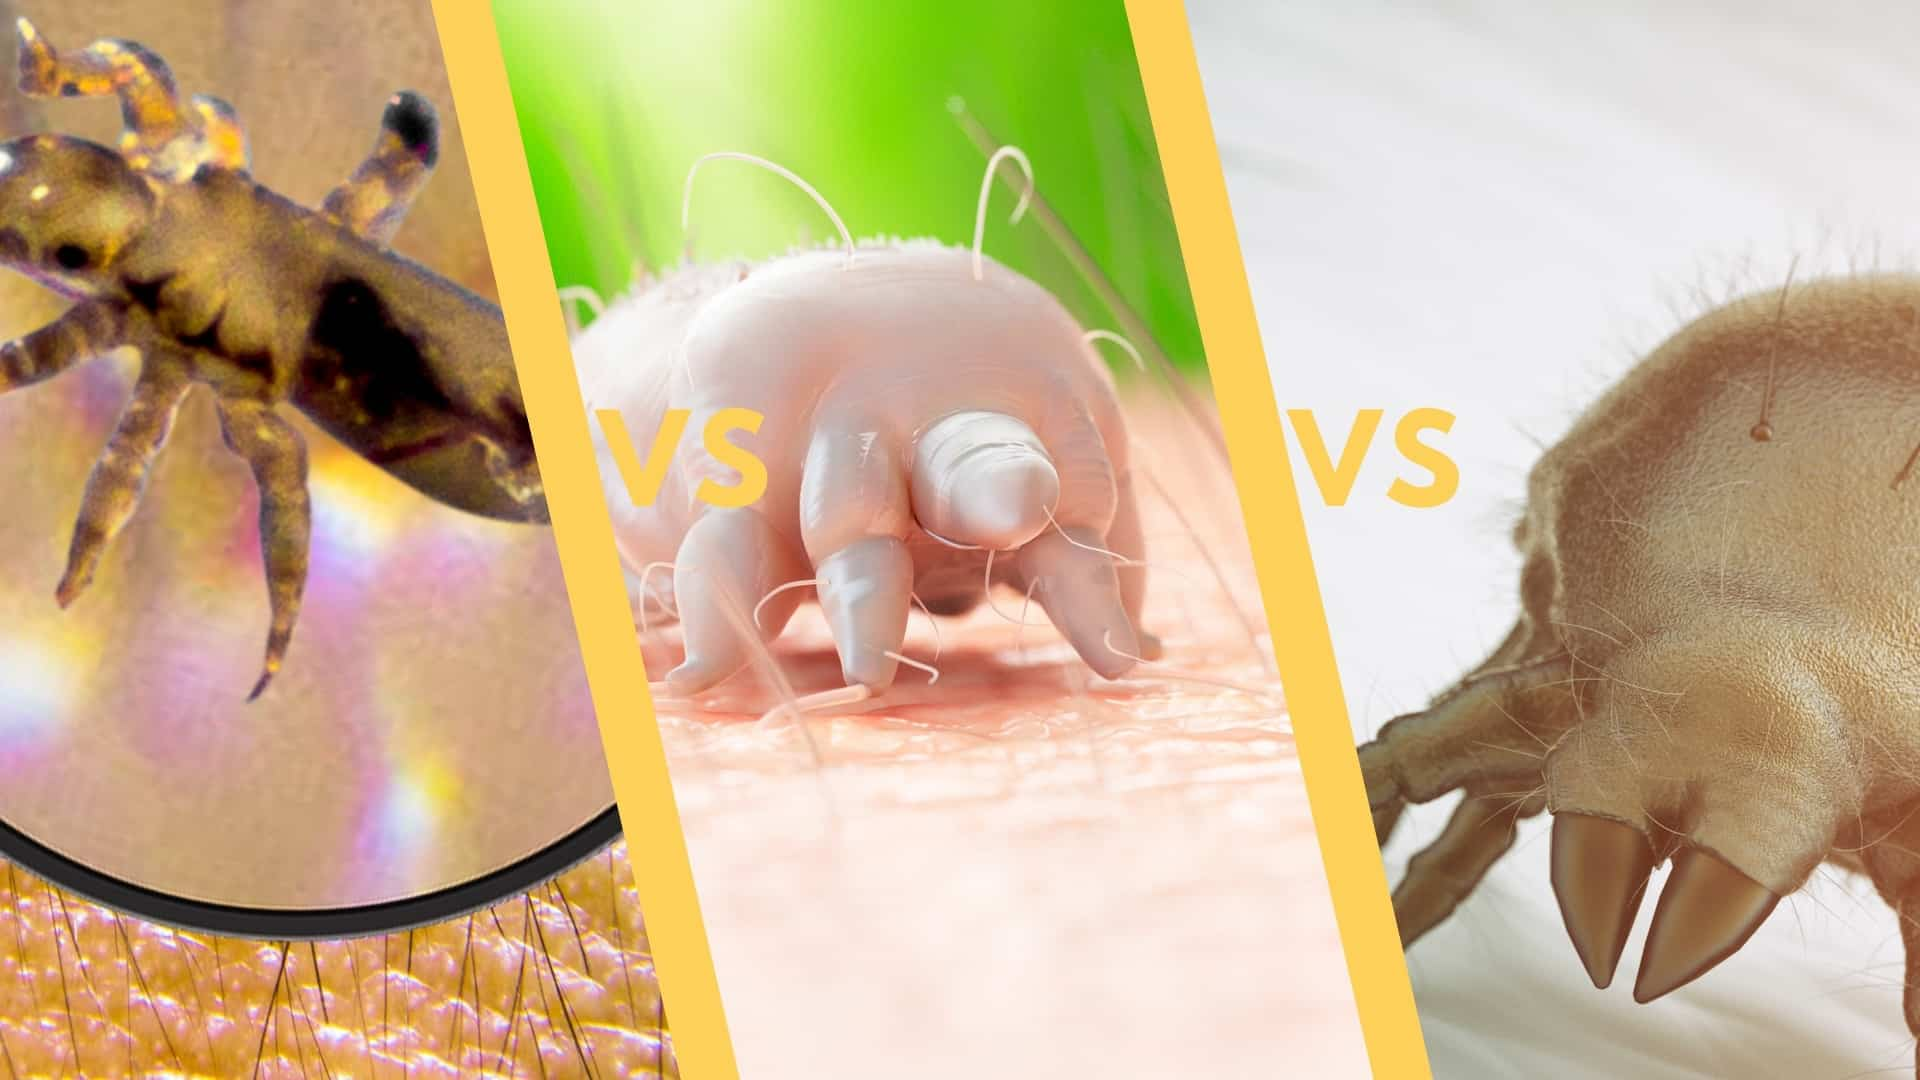 Dust mites vs lice vs scabies vs bed bugs [Complete Guide]